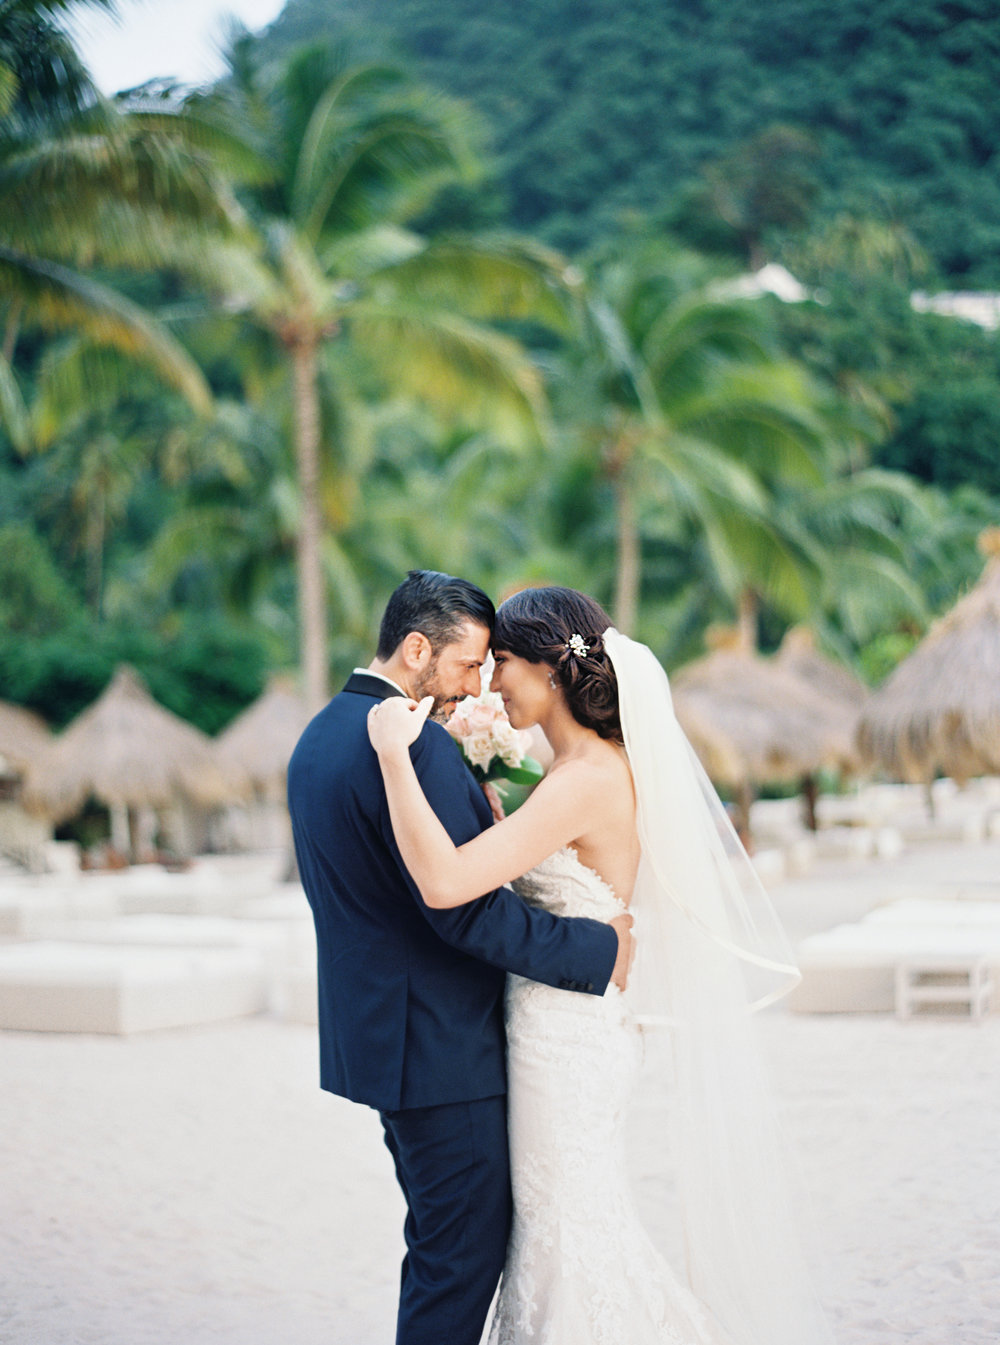 089Delmary's & Daniel : ELOPEMENT : ST. LUCIA : CARIBBEAN : PHOTO & VIDEO : DESTINATION : OUTLIVE CREATIVE : 2016 .jpg